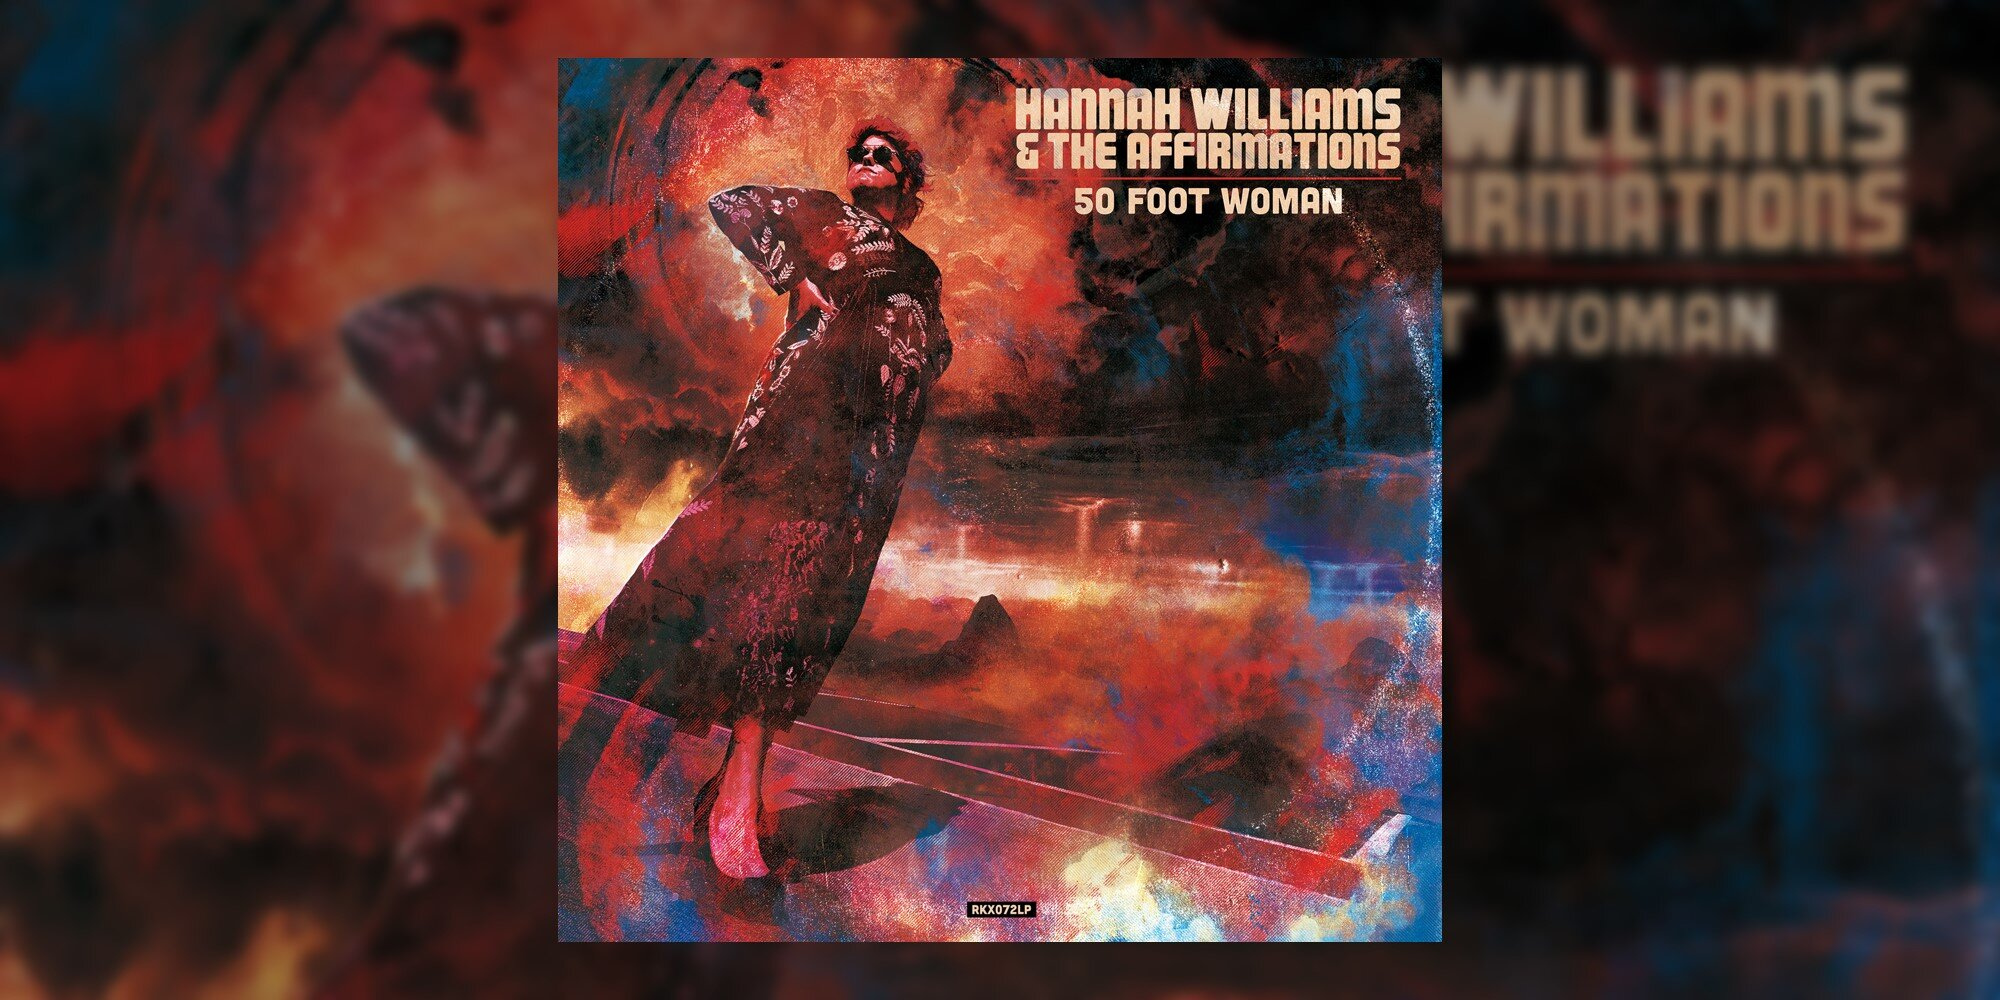 Hannah Williams & The Affirmations' '50 Foot Woman' arrives in stores October 18th